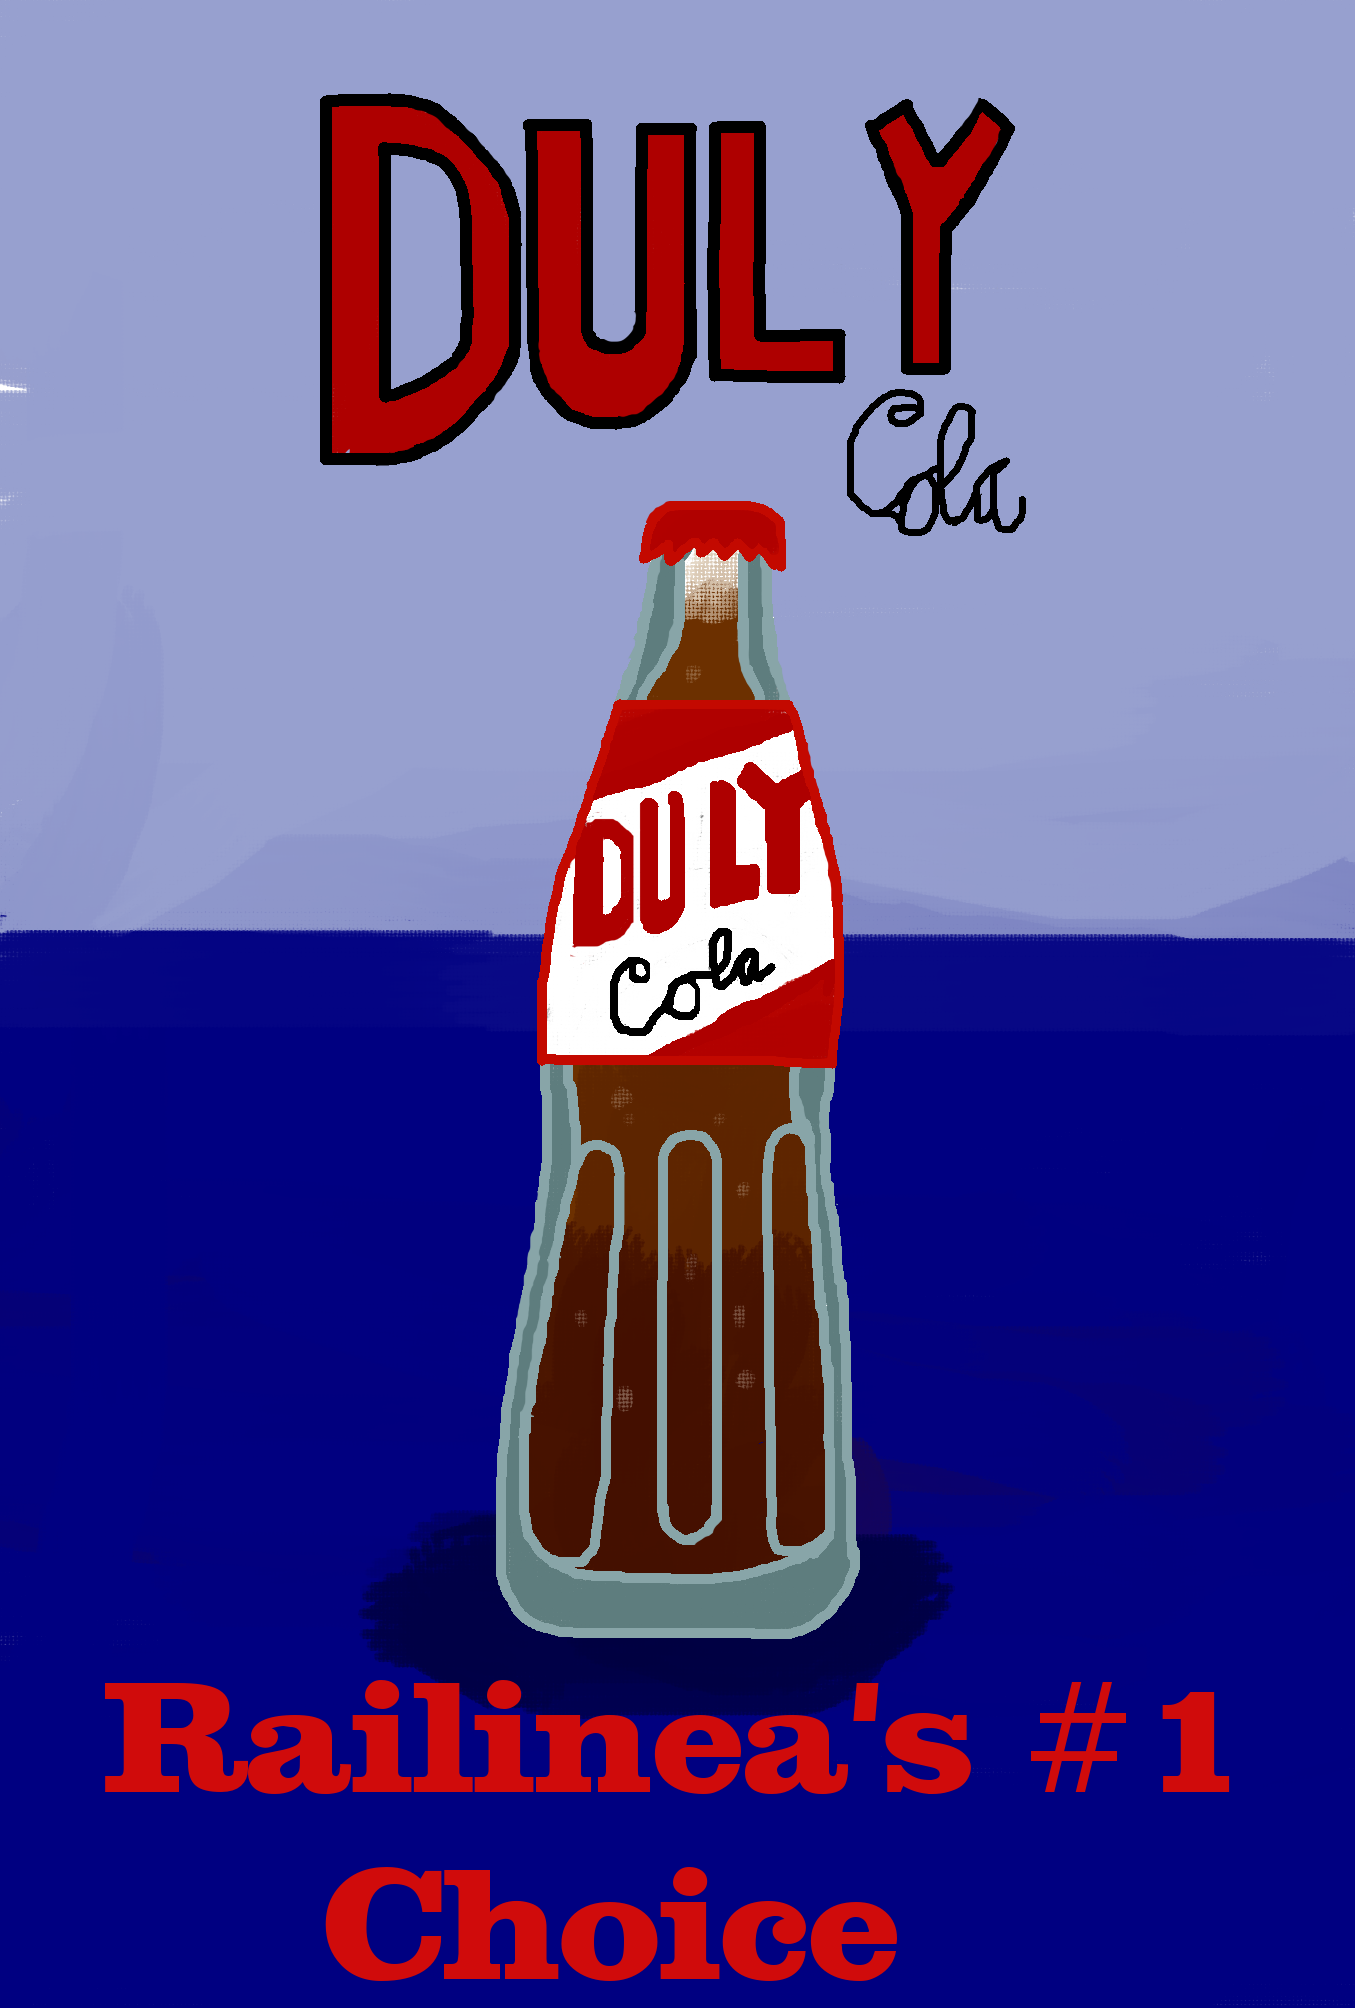 Duly Cola Poster